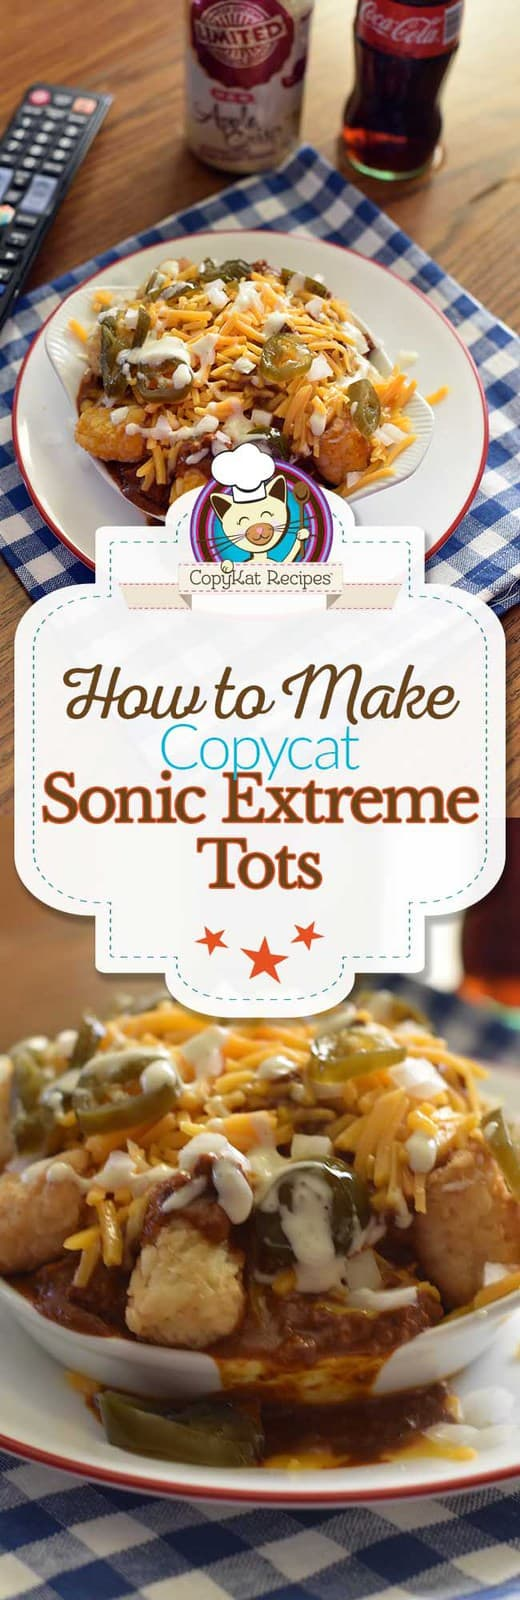 Make your next game or movie night fun when you serve up a platter of Sonic Extreme Tots!